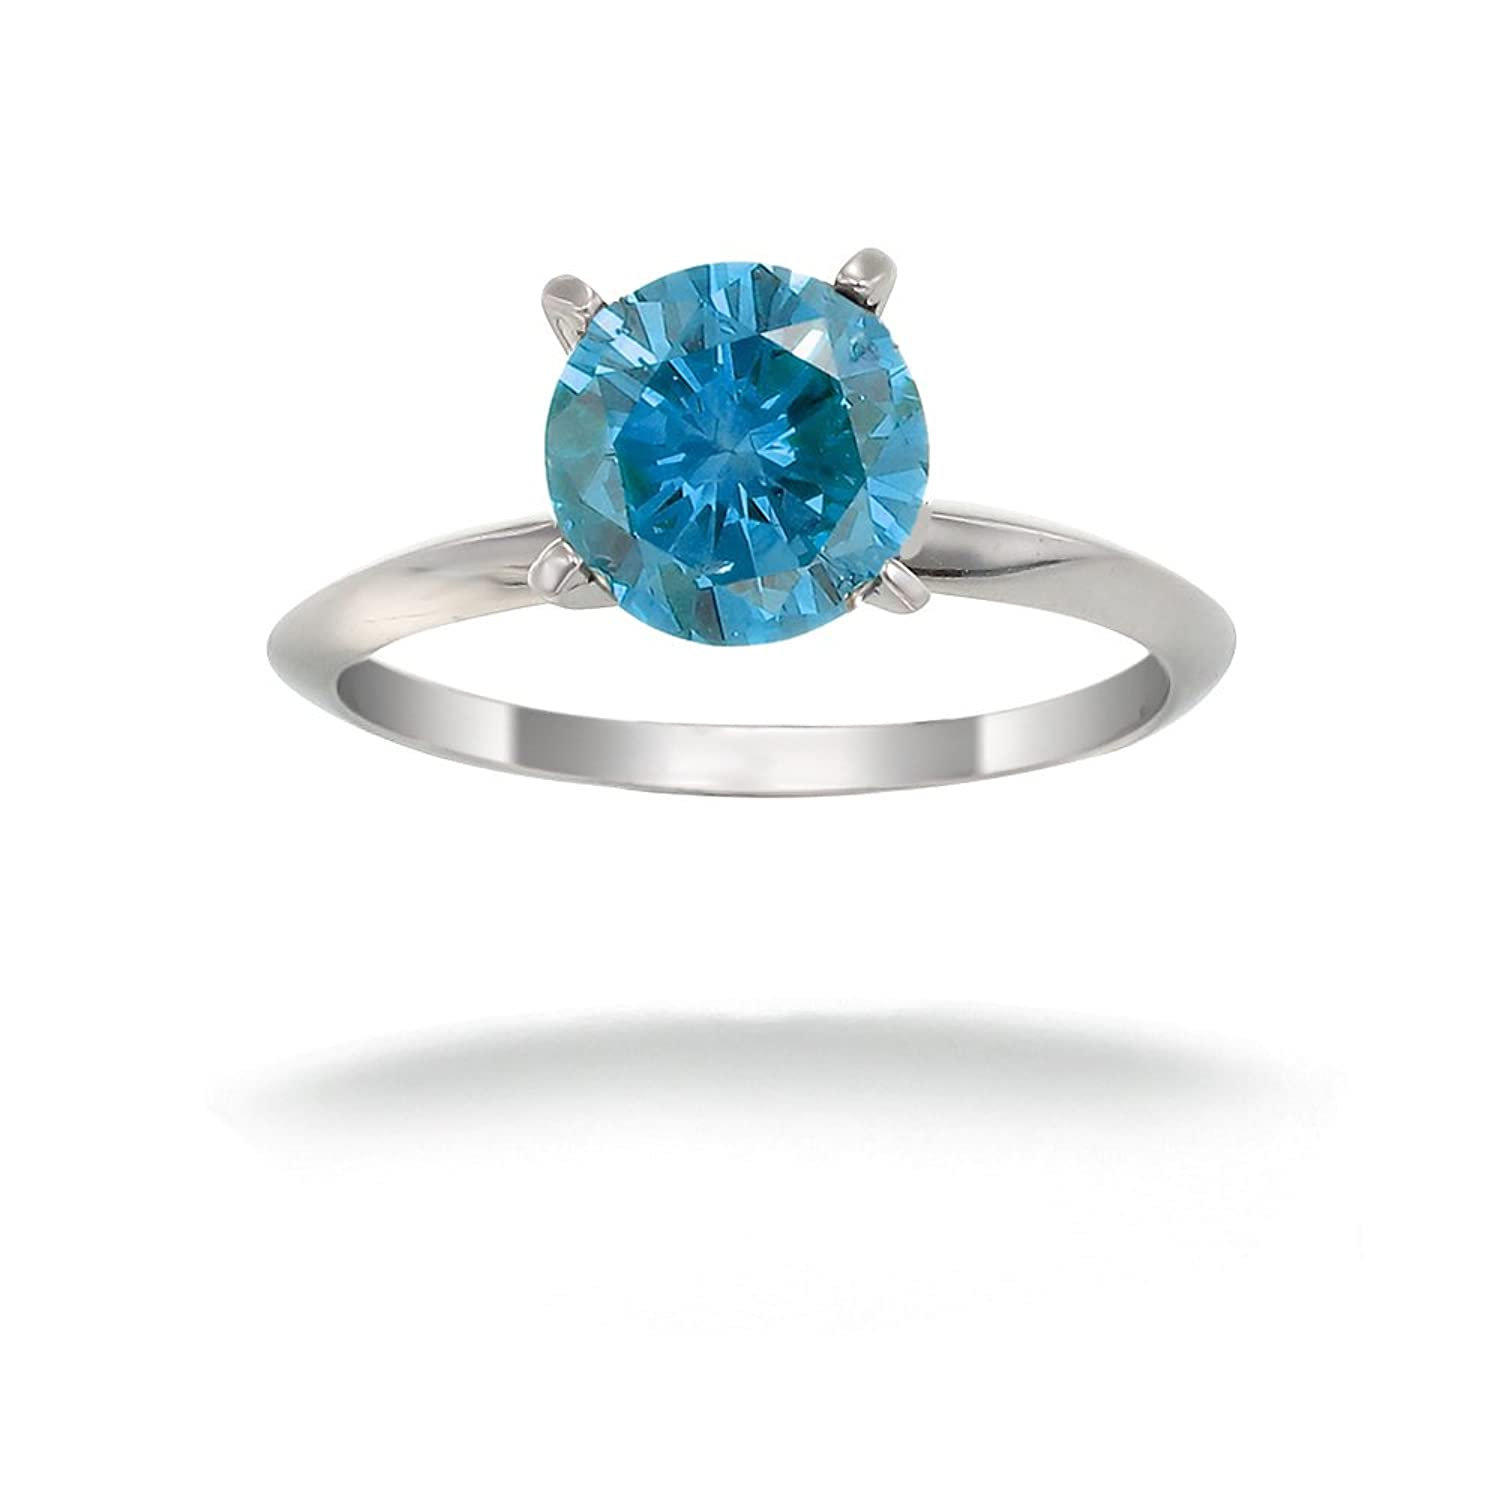 14K White Gold Blue Diamond Solitaire Ring 1 2 CT